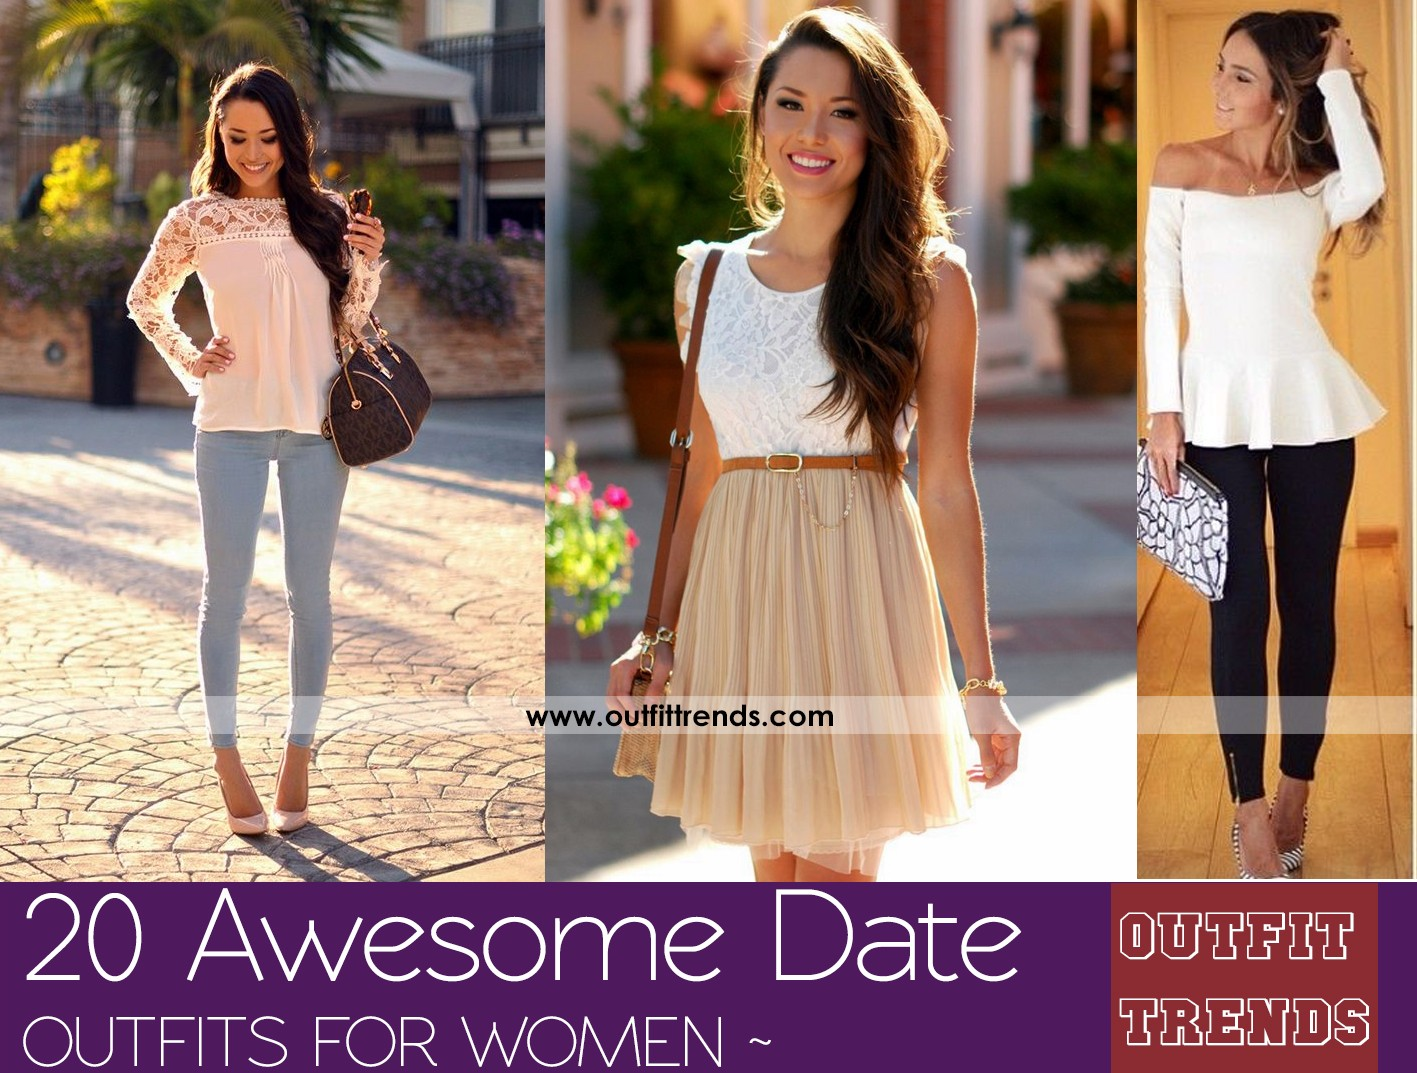 date-outfits-for-women Date Outfits for Women - 20 Best Outfits to wear on a Date